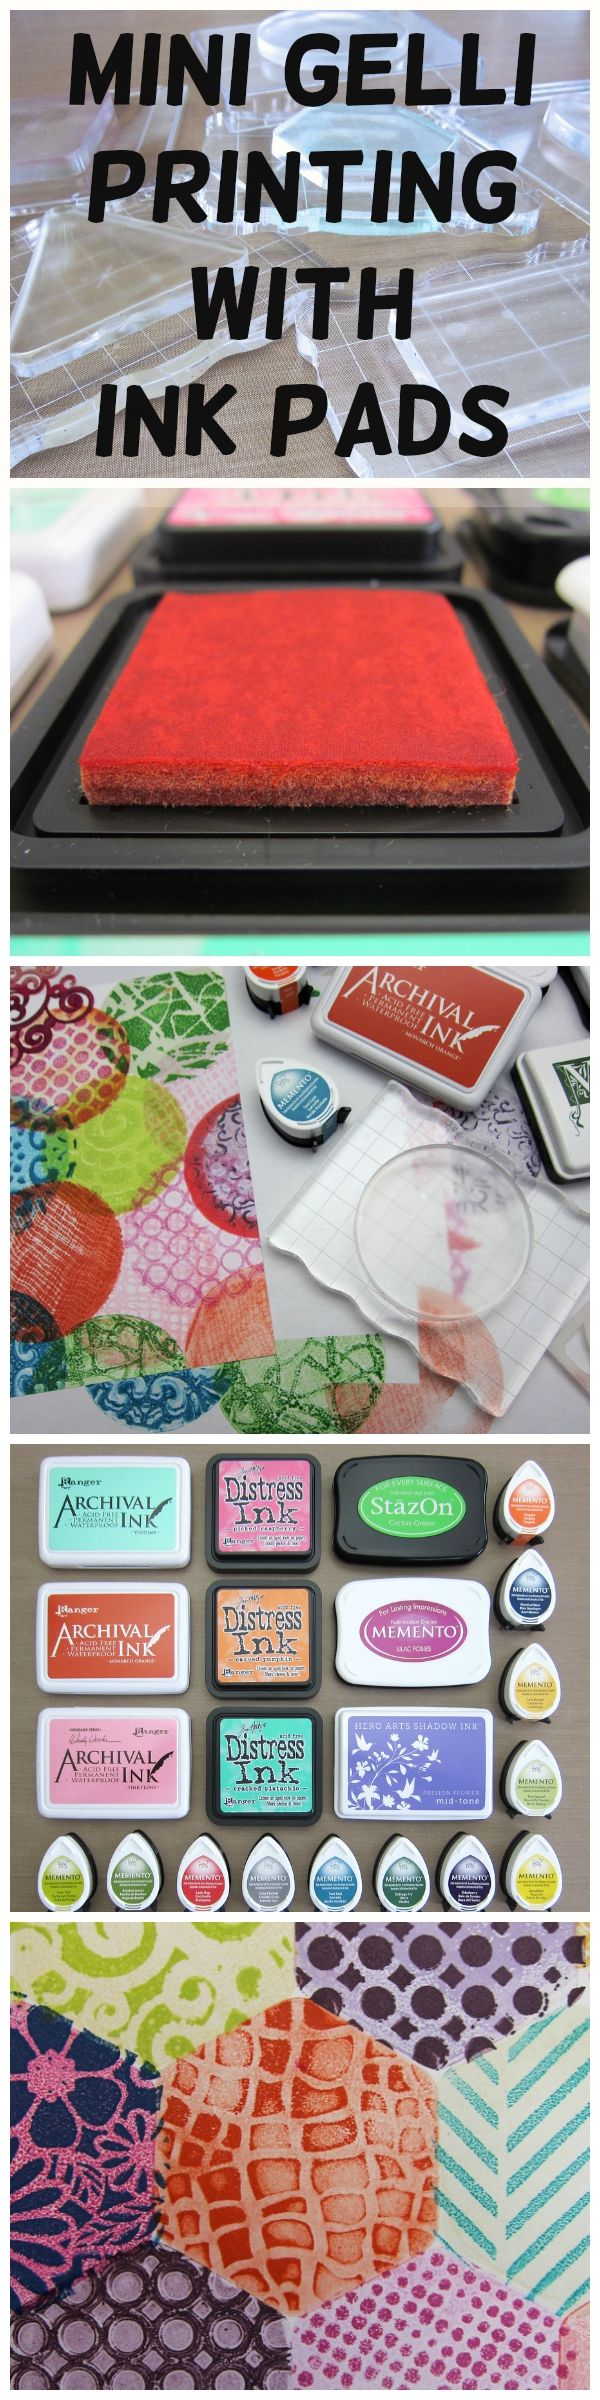 Mini Gelli® Stamping with Ink Pads! The NEW Mini Gelli® Printing Plates are perfect for stamping—and so much fun to print with! Simply remove the mylar cover sheets and press a Mini plate onto an acrylic block or smooth plastic sheet—and you're ready for stamping!